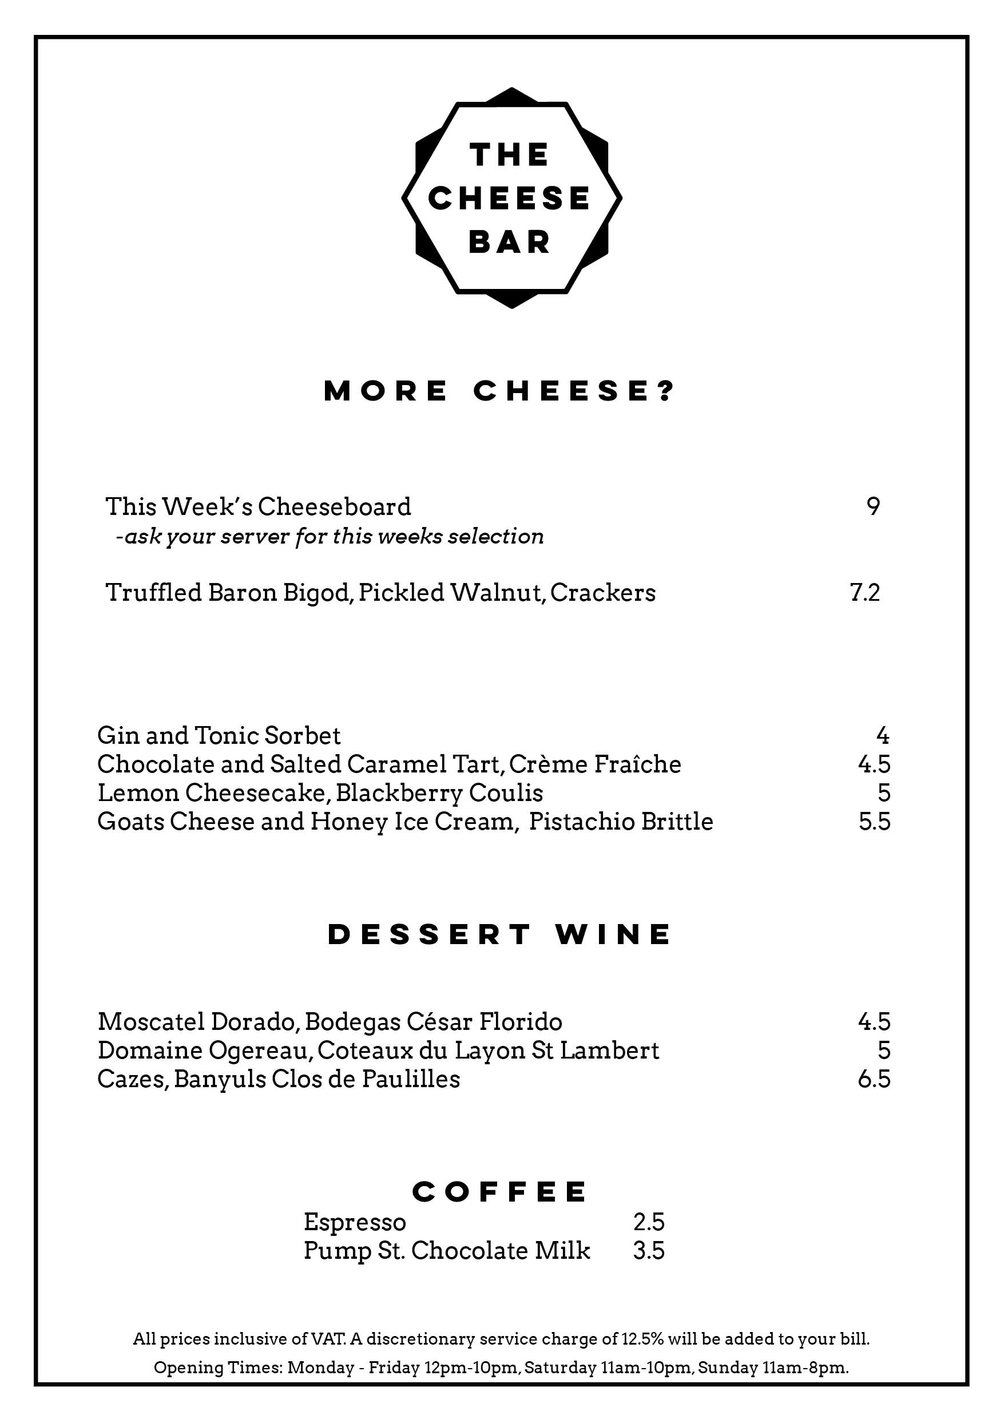 Dessert Menu jpg 13th march.jpg